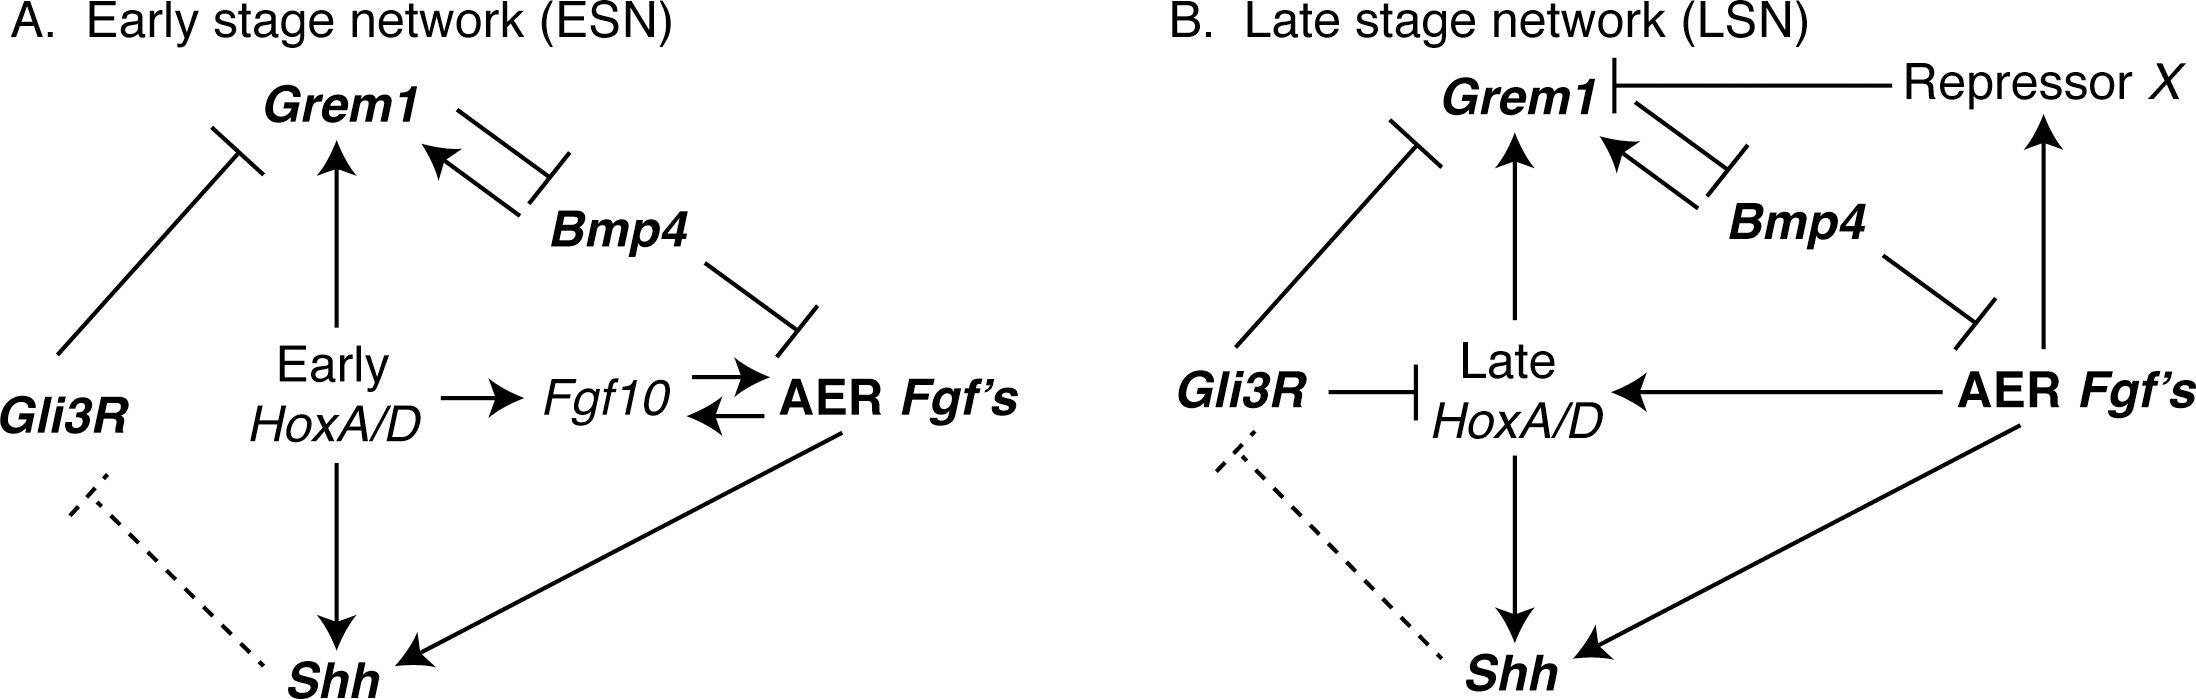 Interactions among genes in the (A) Early (ESN) and (B) Late (LSN) stage networks that were computationally modeled in this study are shown.